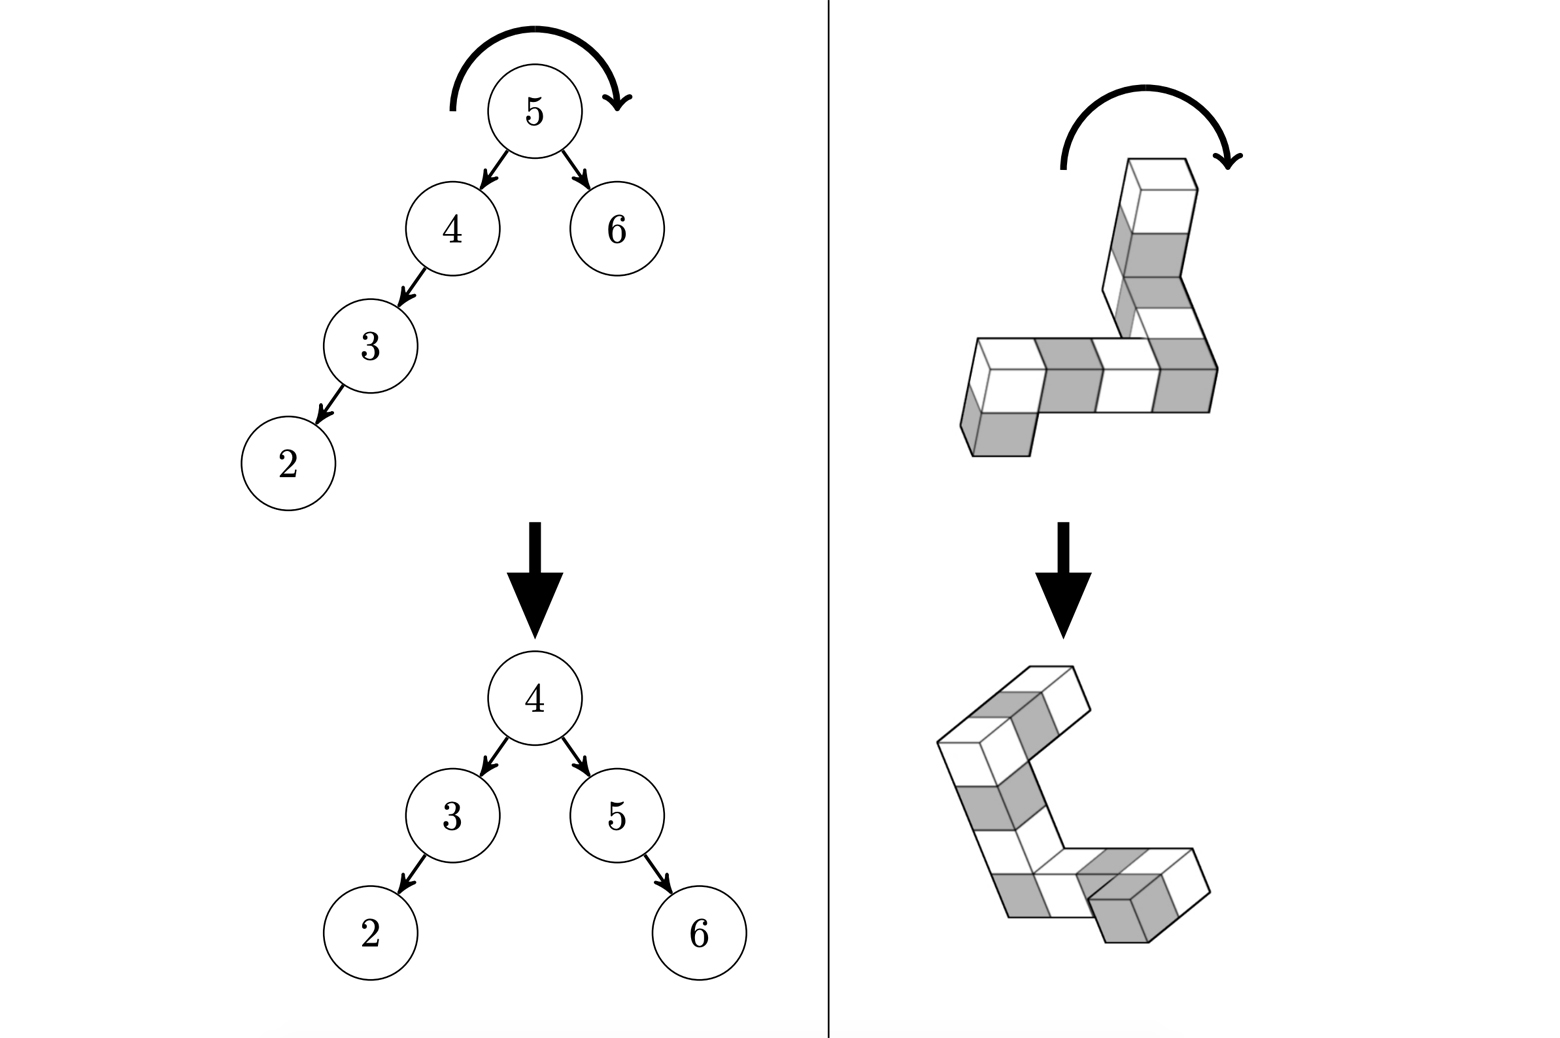 Data structure spatial comparison